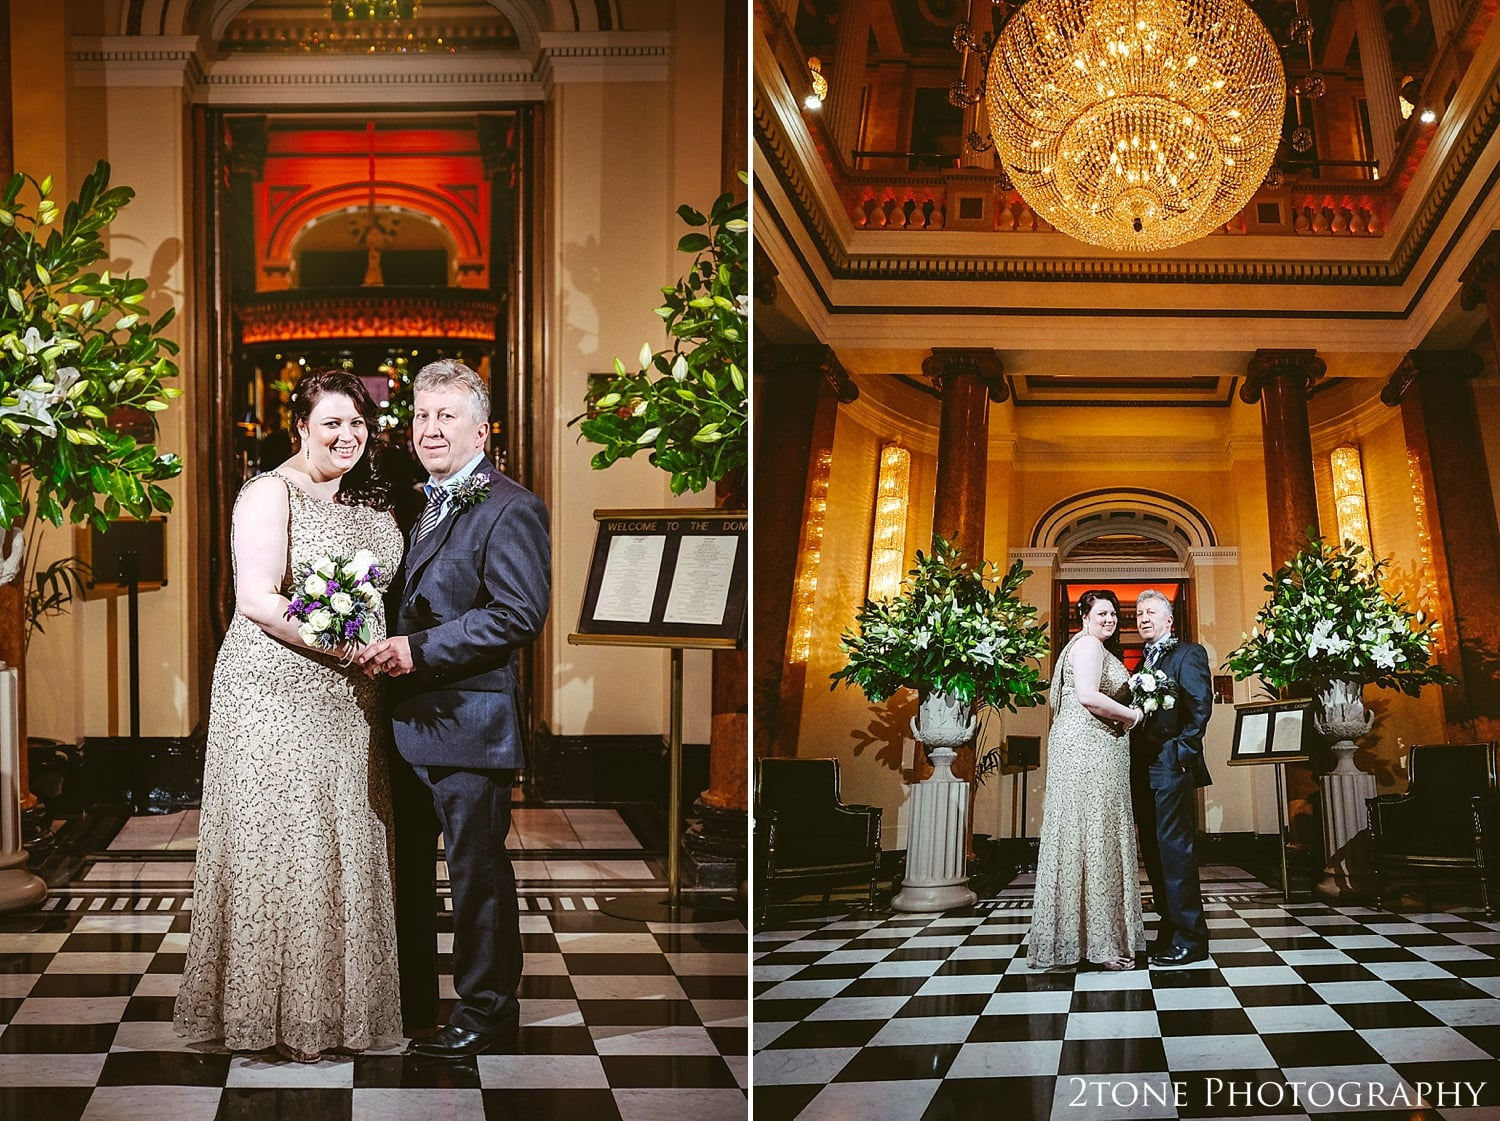 Wedding day in the Dome.  Photography by 2tone Photography